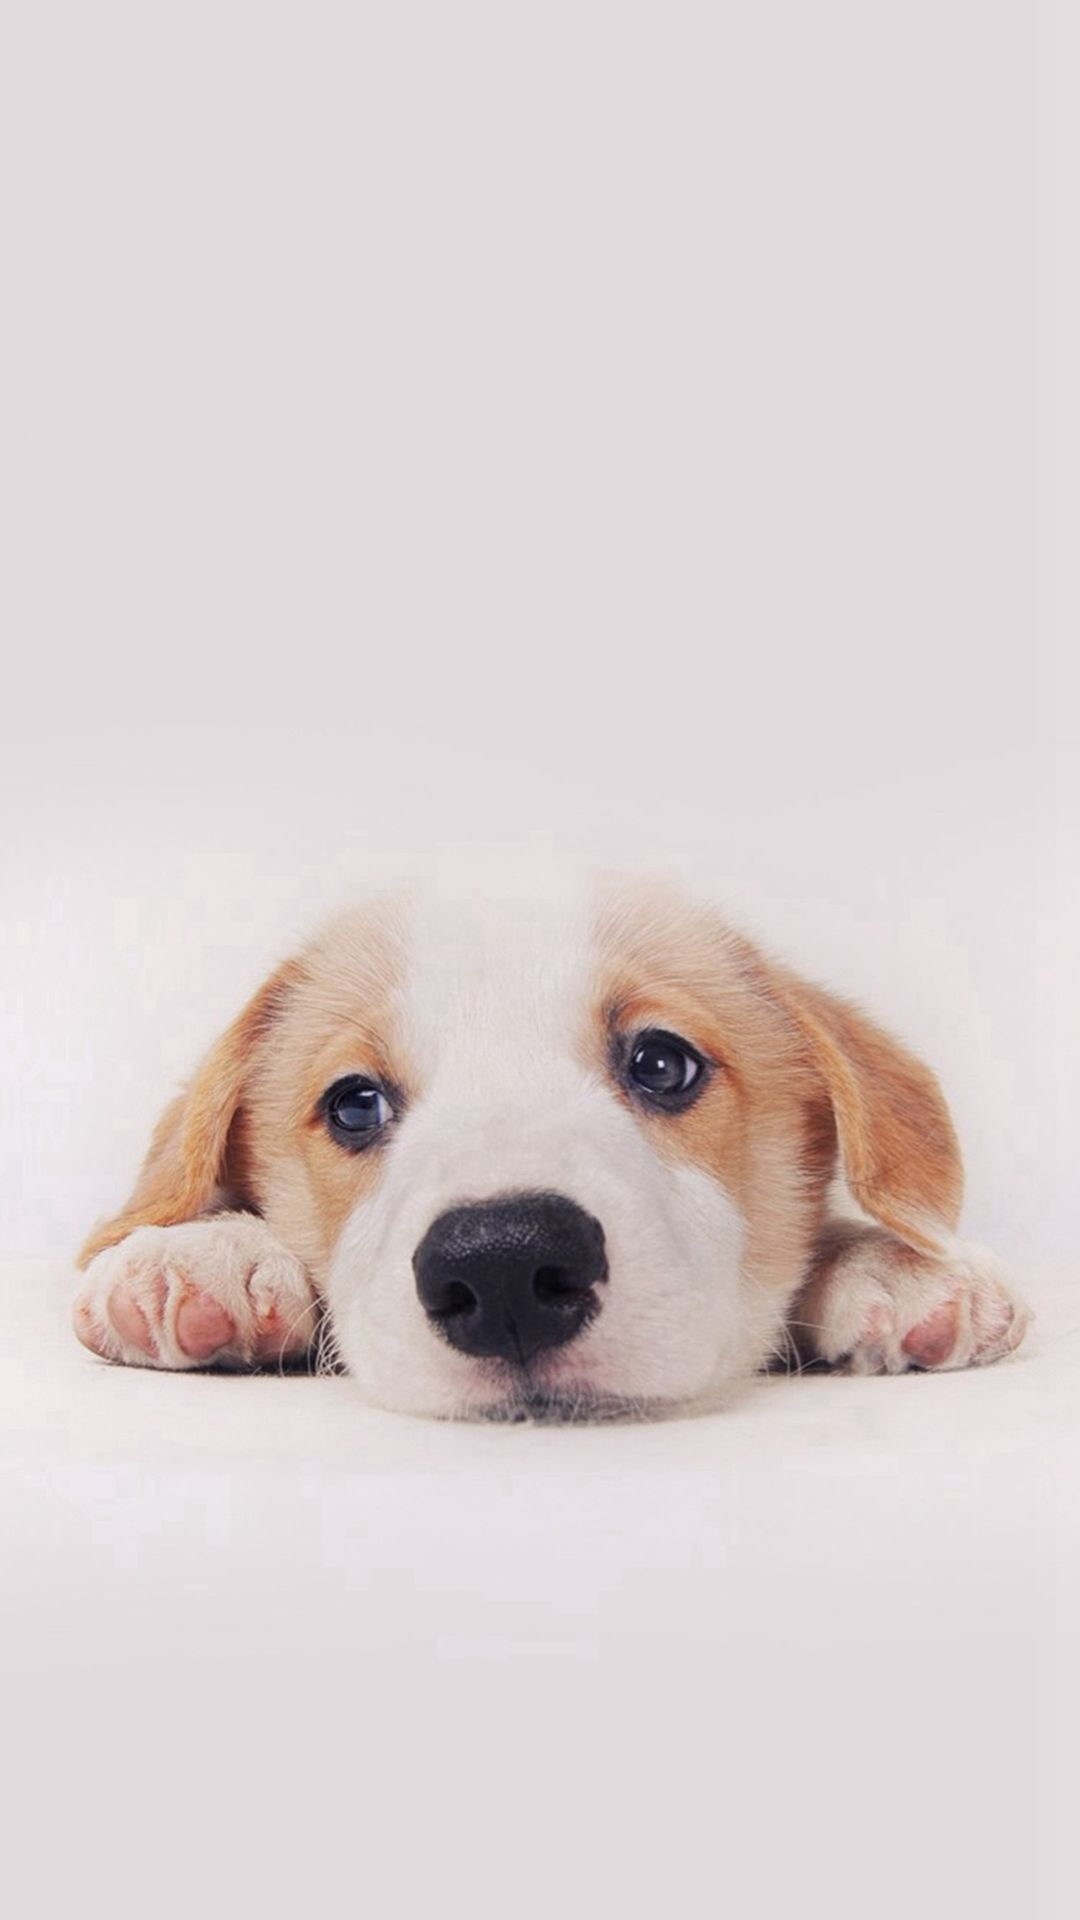 Cute Puppy Dog Pet iPhone 8 Wallpapers Cute dog